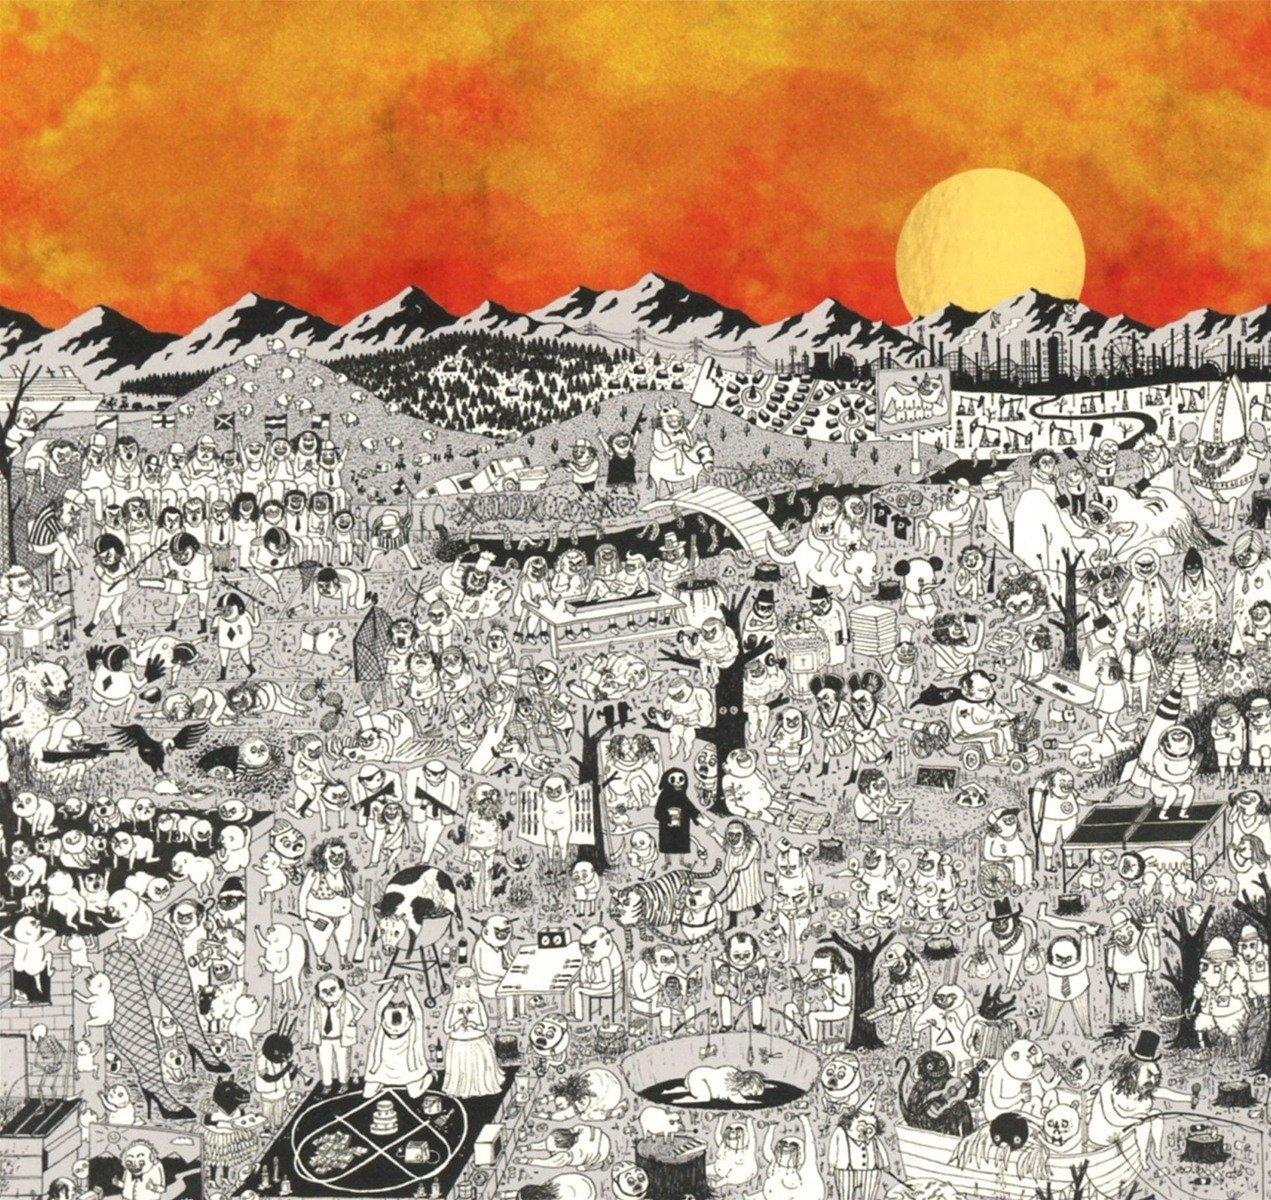 Pop-Neuerscheinungen: Father John Misty: Pure Comedy (Sub Pop)